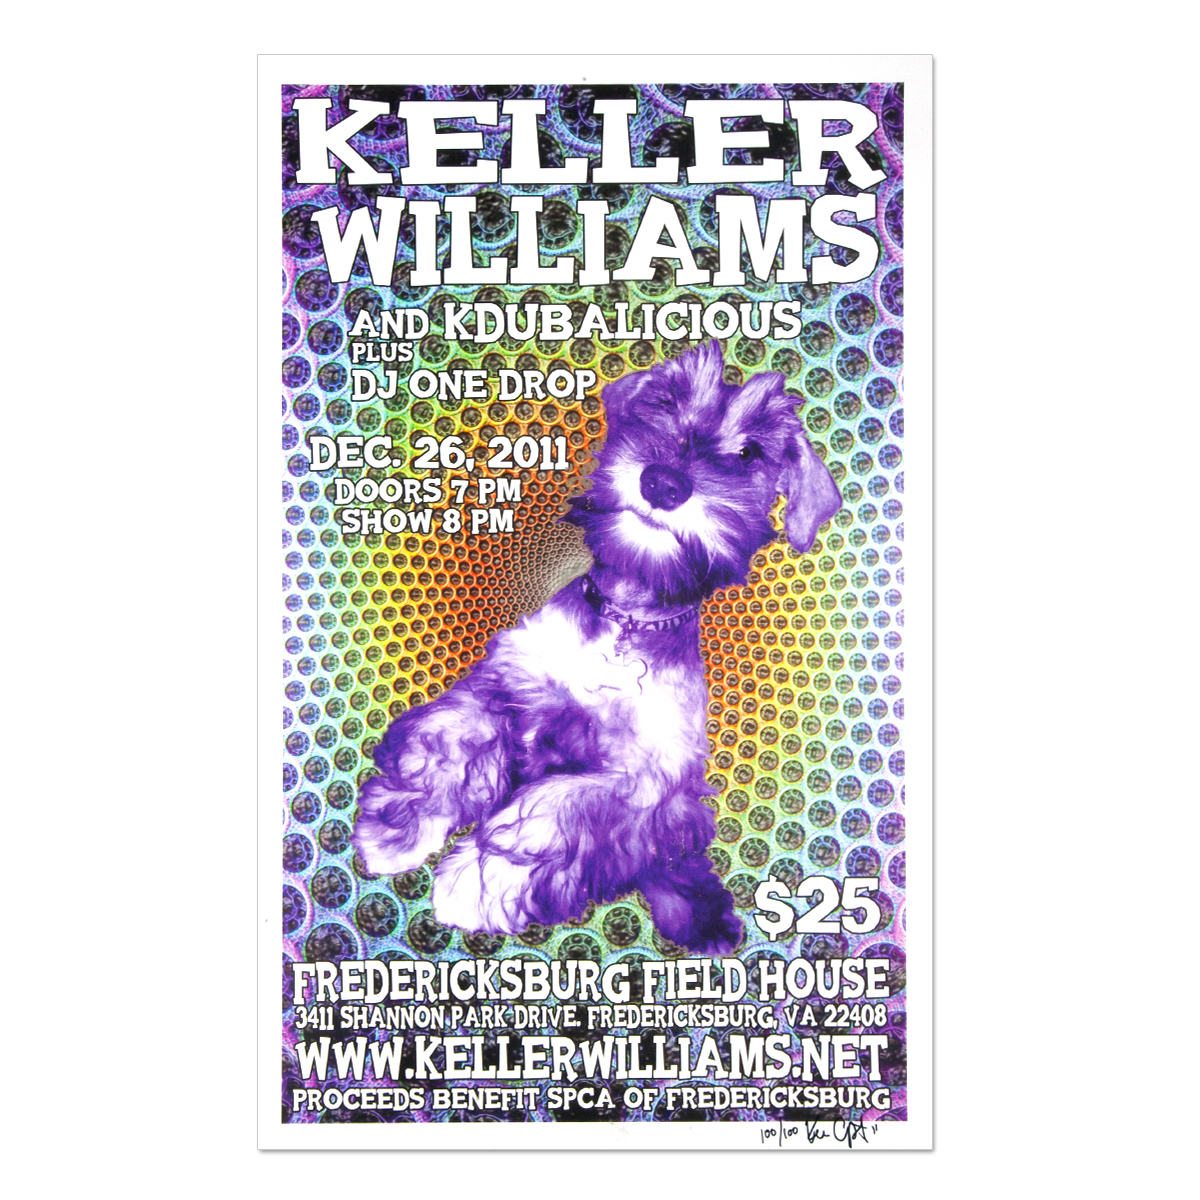 Keller Williams Fredericksburg, VA 12/26/11 Event Poster